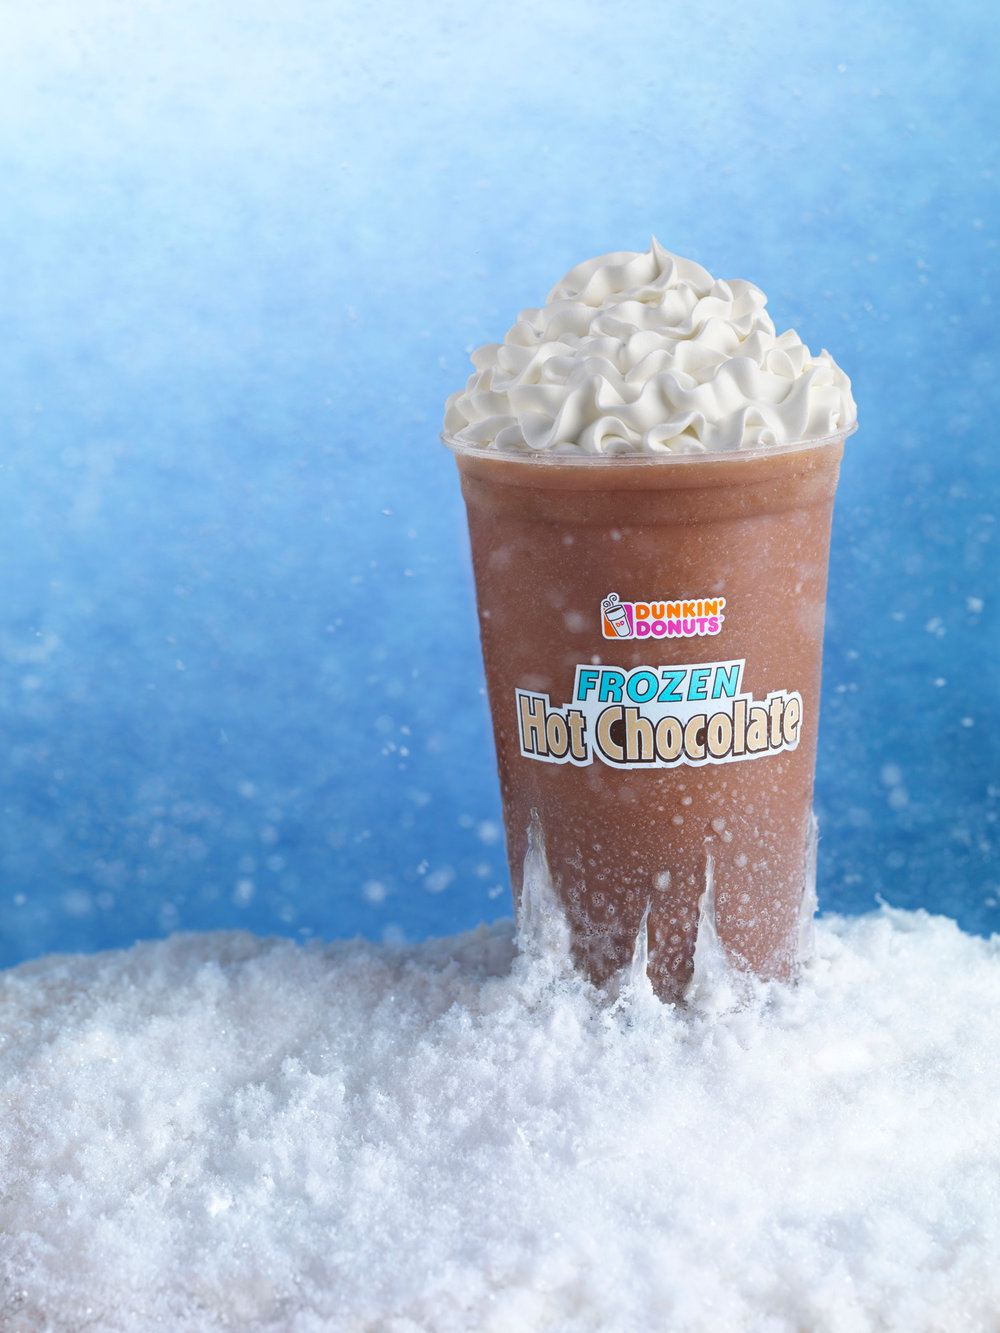 Frozen_hot_choco_0382_Whip0007.jpg